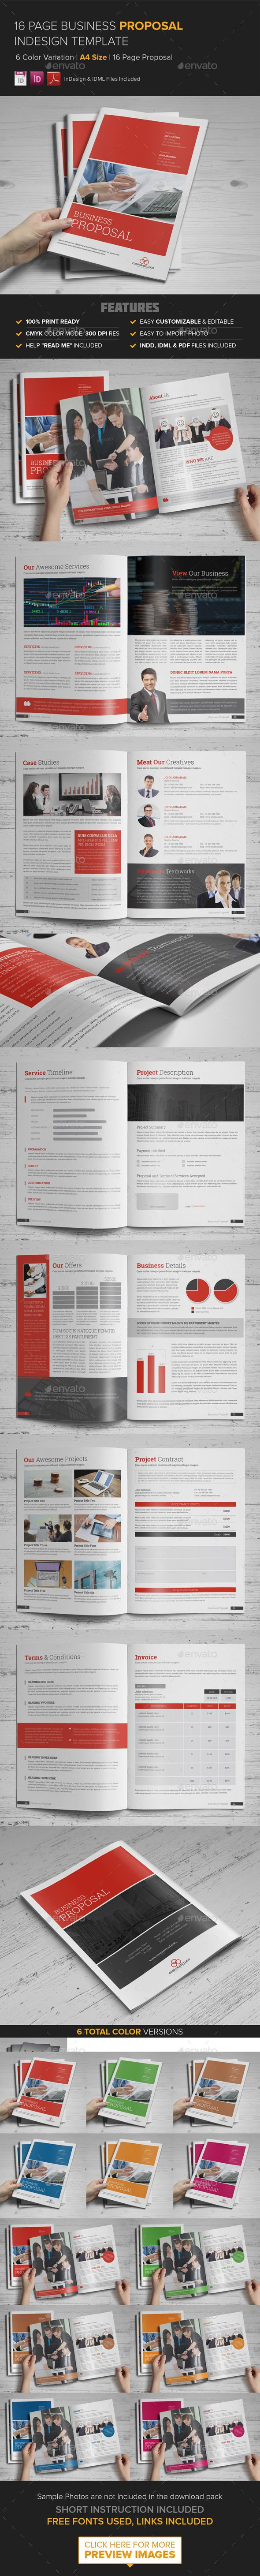 Business Proposal InDesign Template Buy and